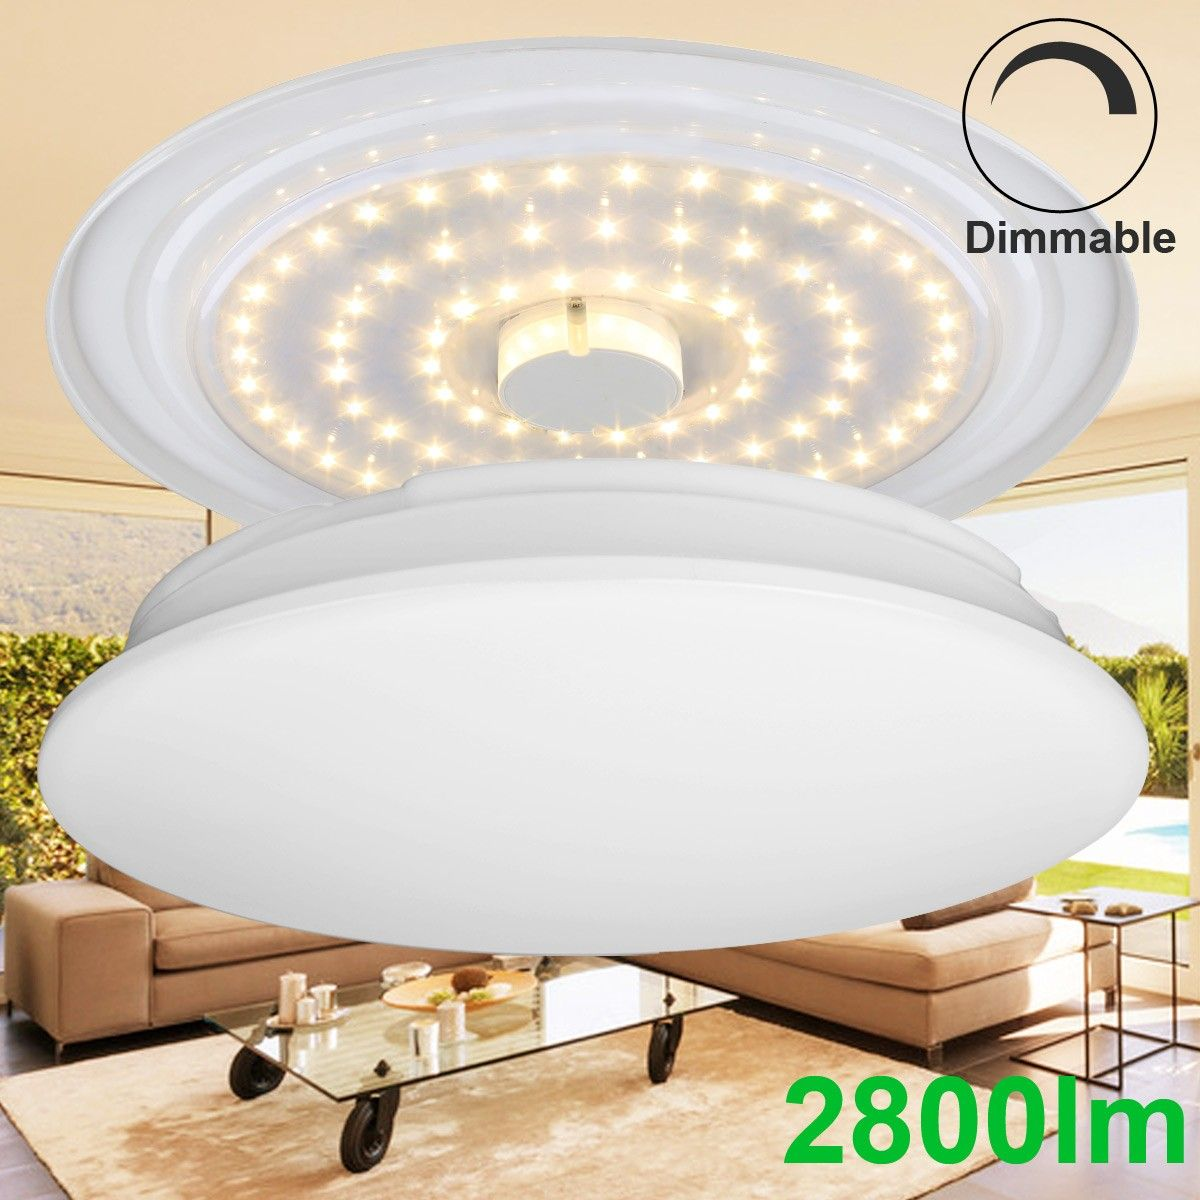 Super Bright 40w Dimmable Led Ceiling Lights 2800lm Warm White Ceiling Light Fixture Round Flush Mo Ceiling Lights Dimmable Led Ceiling Lights Led Fixtures